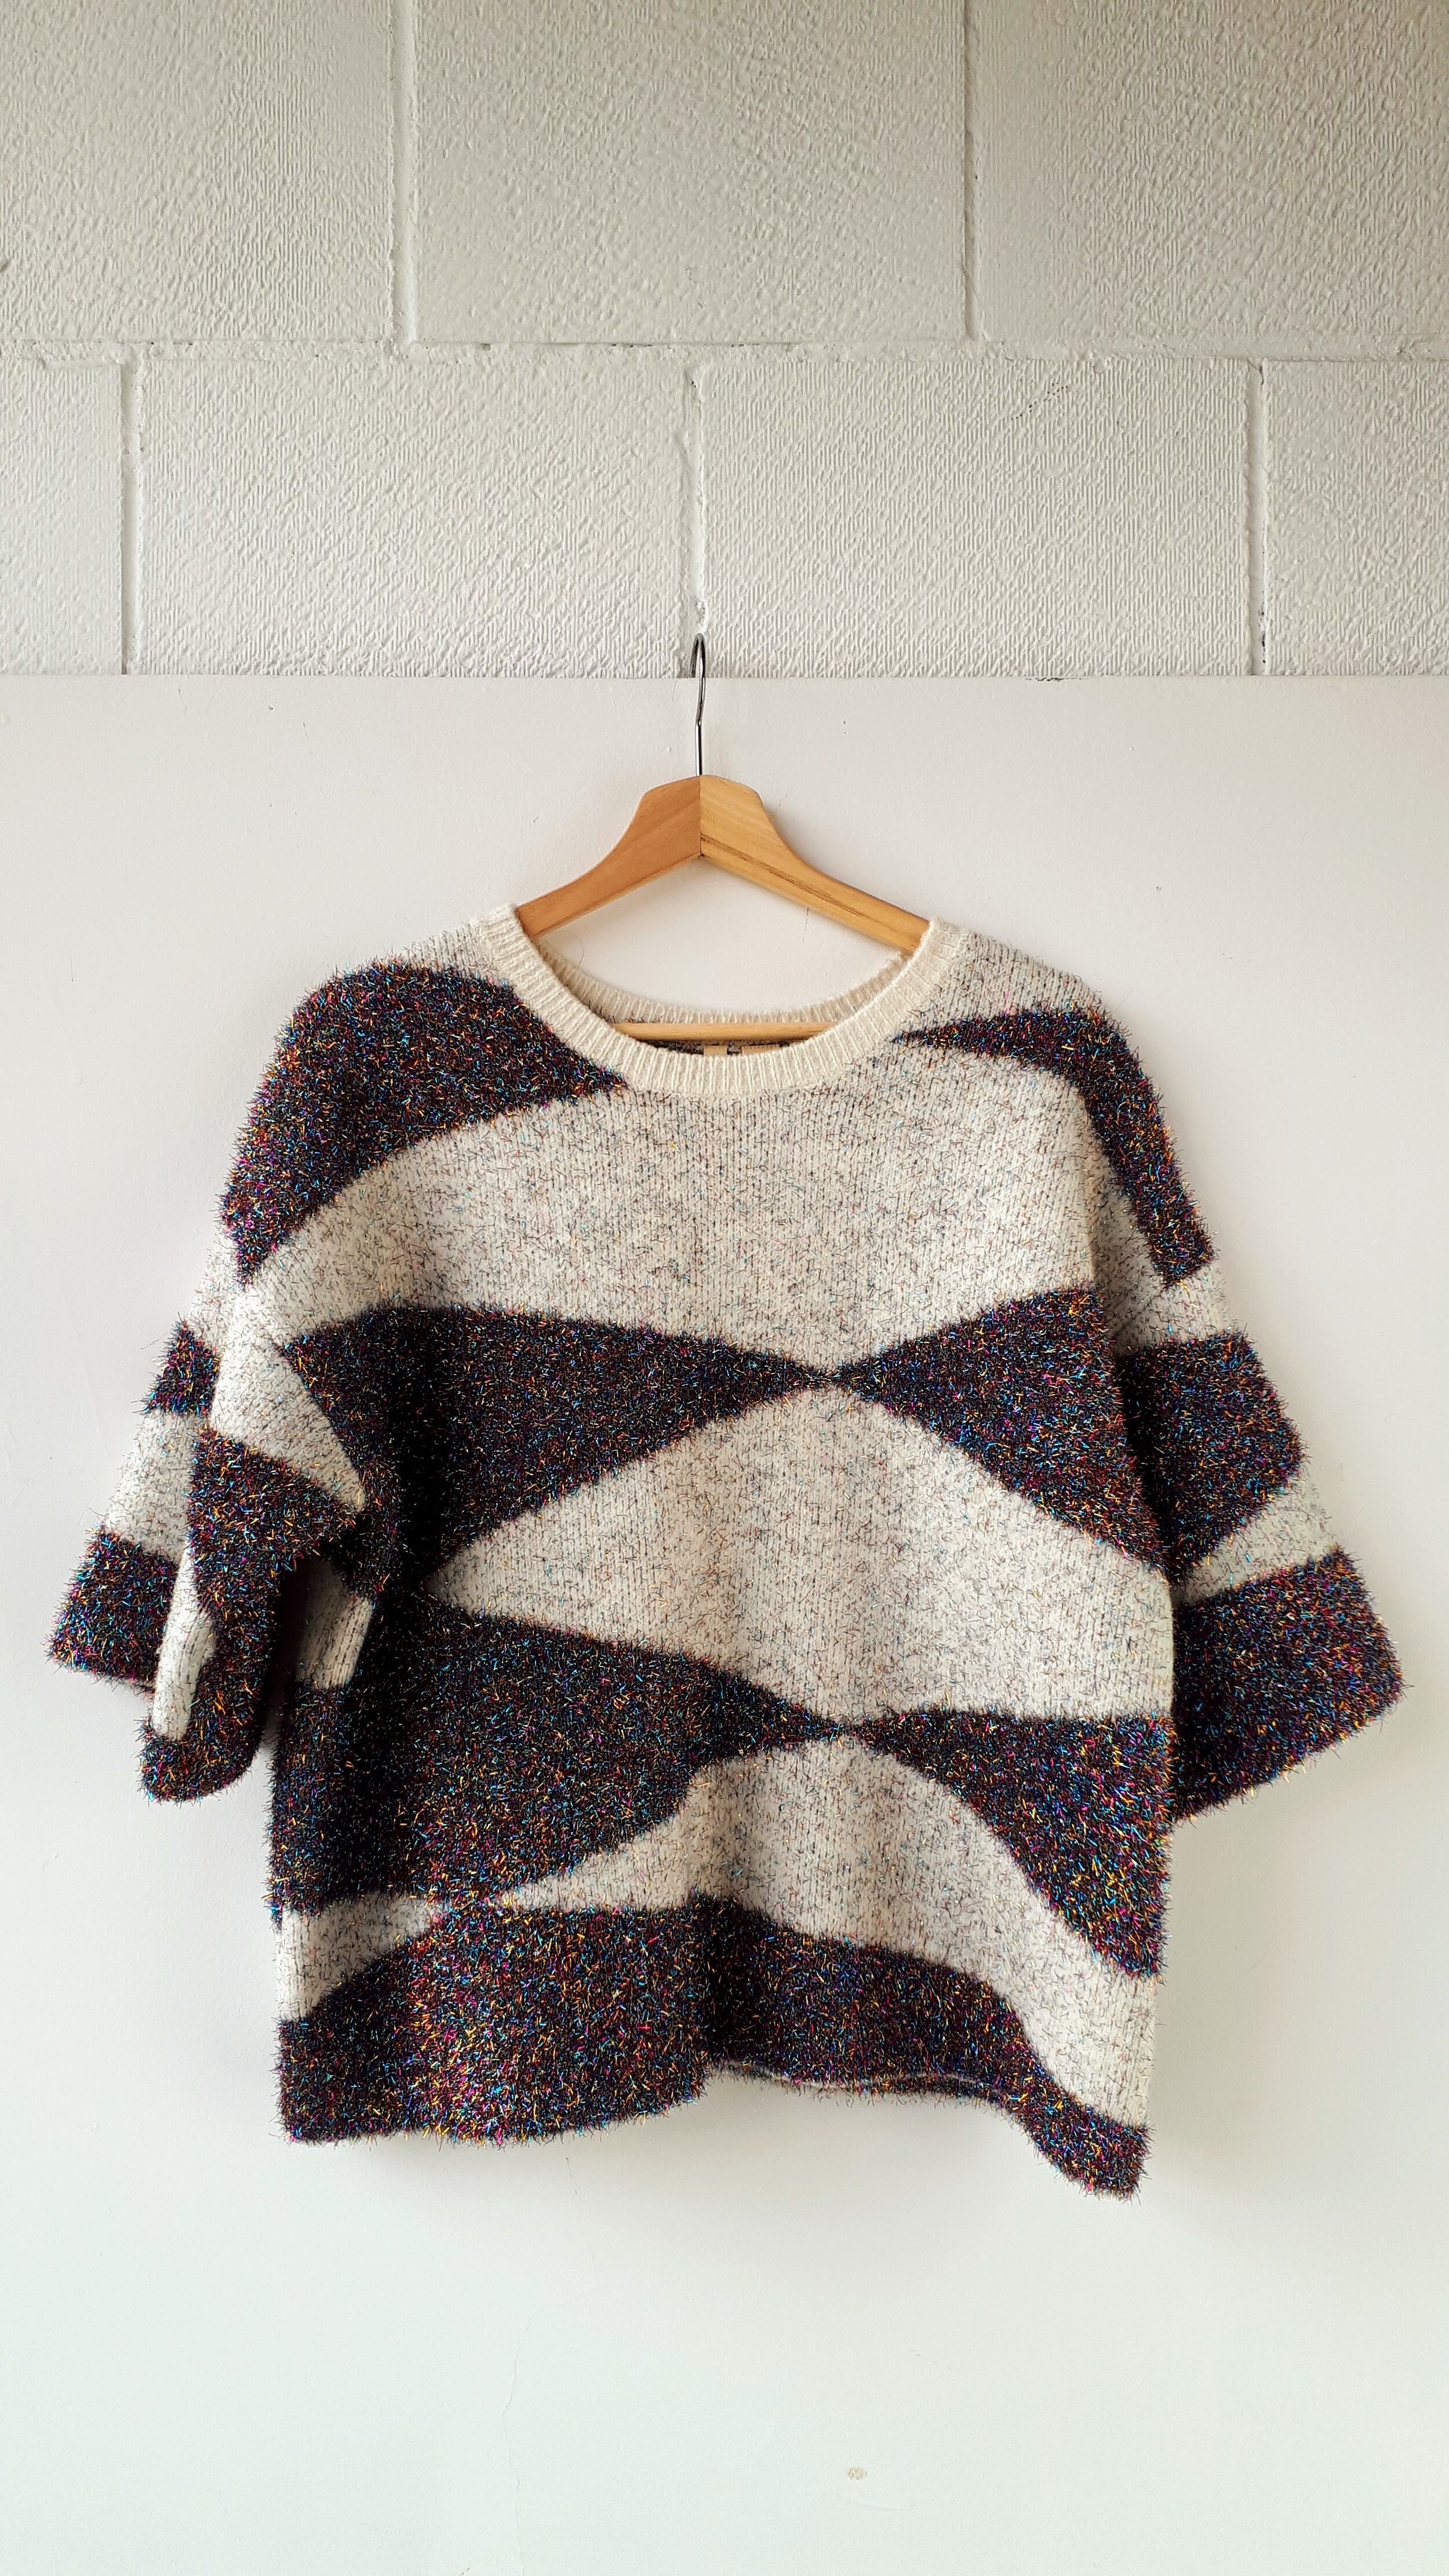 Moth top; Size S, $42